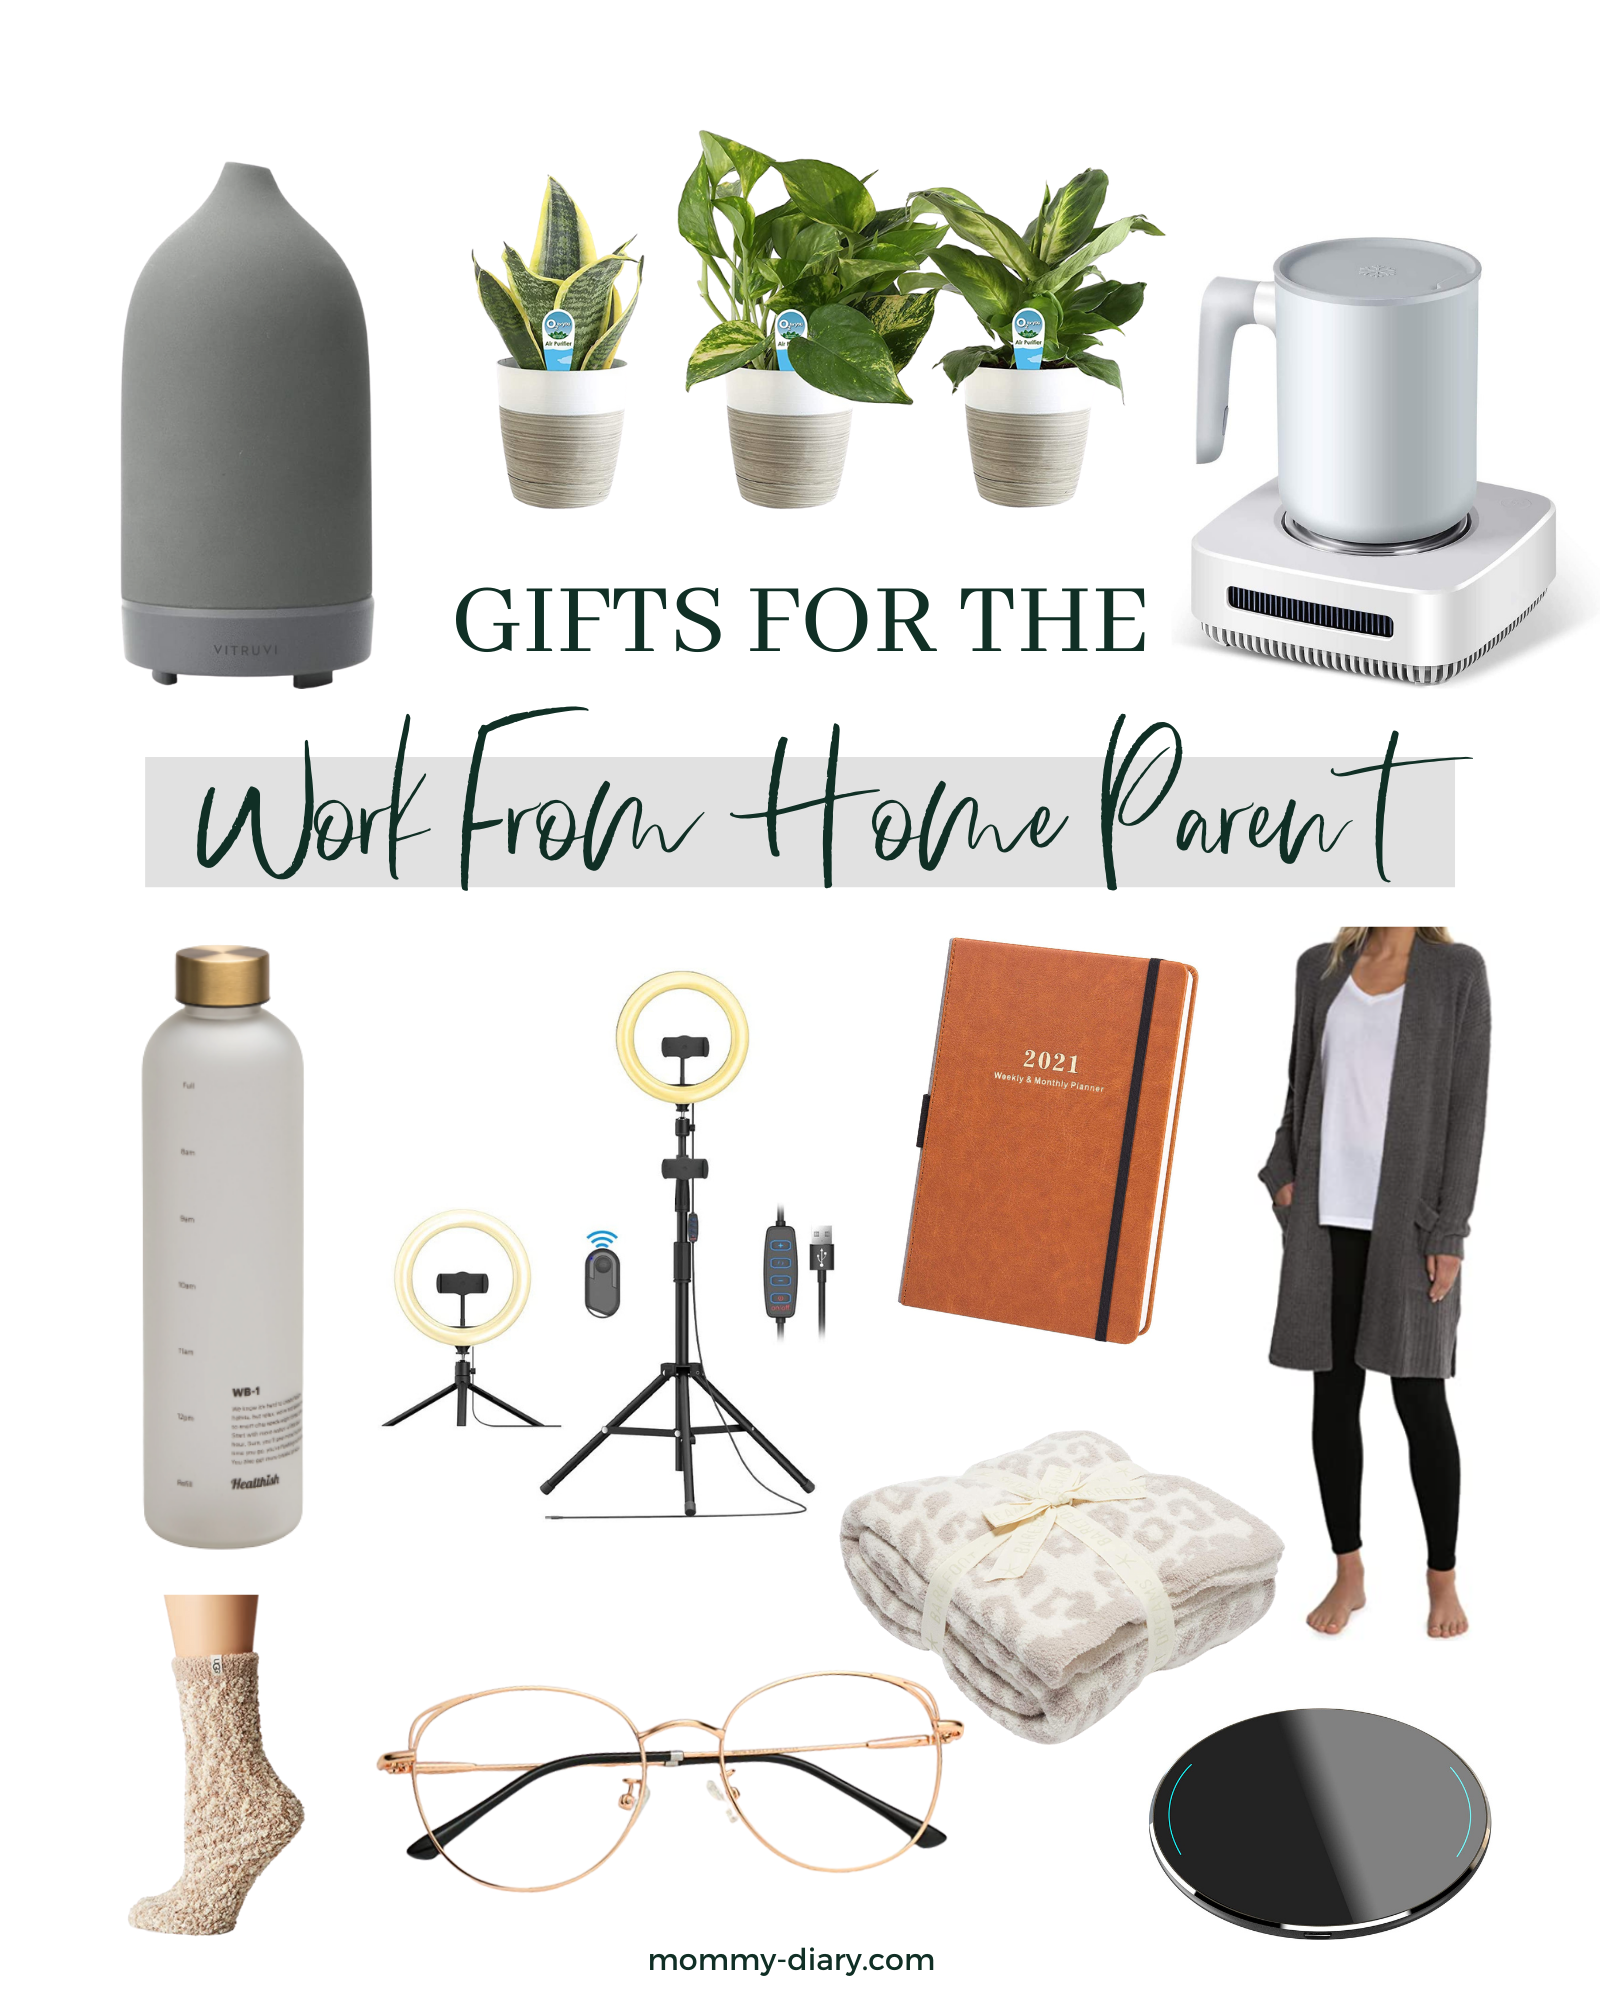 10 Gifts For The Work From Home Parent